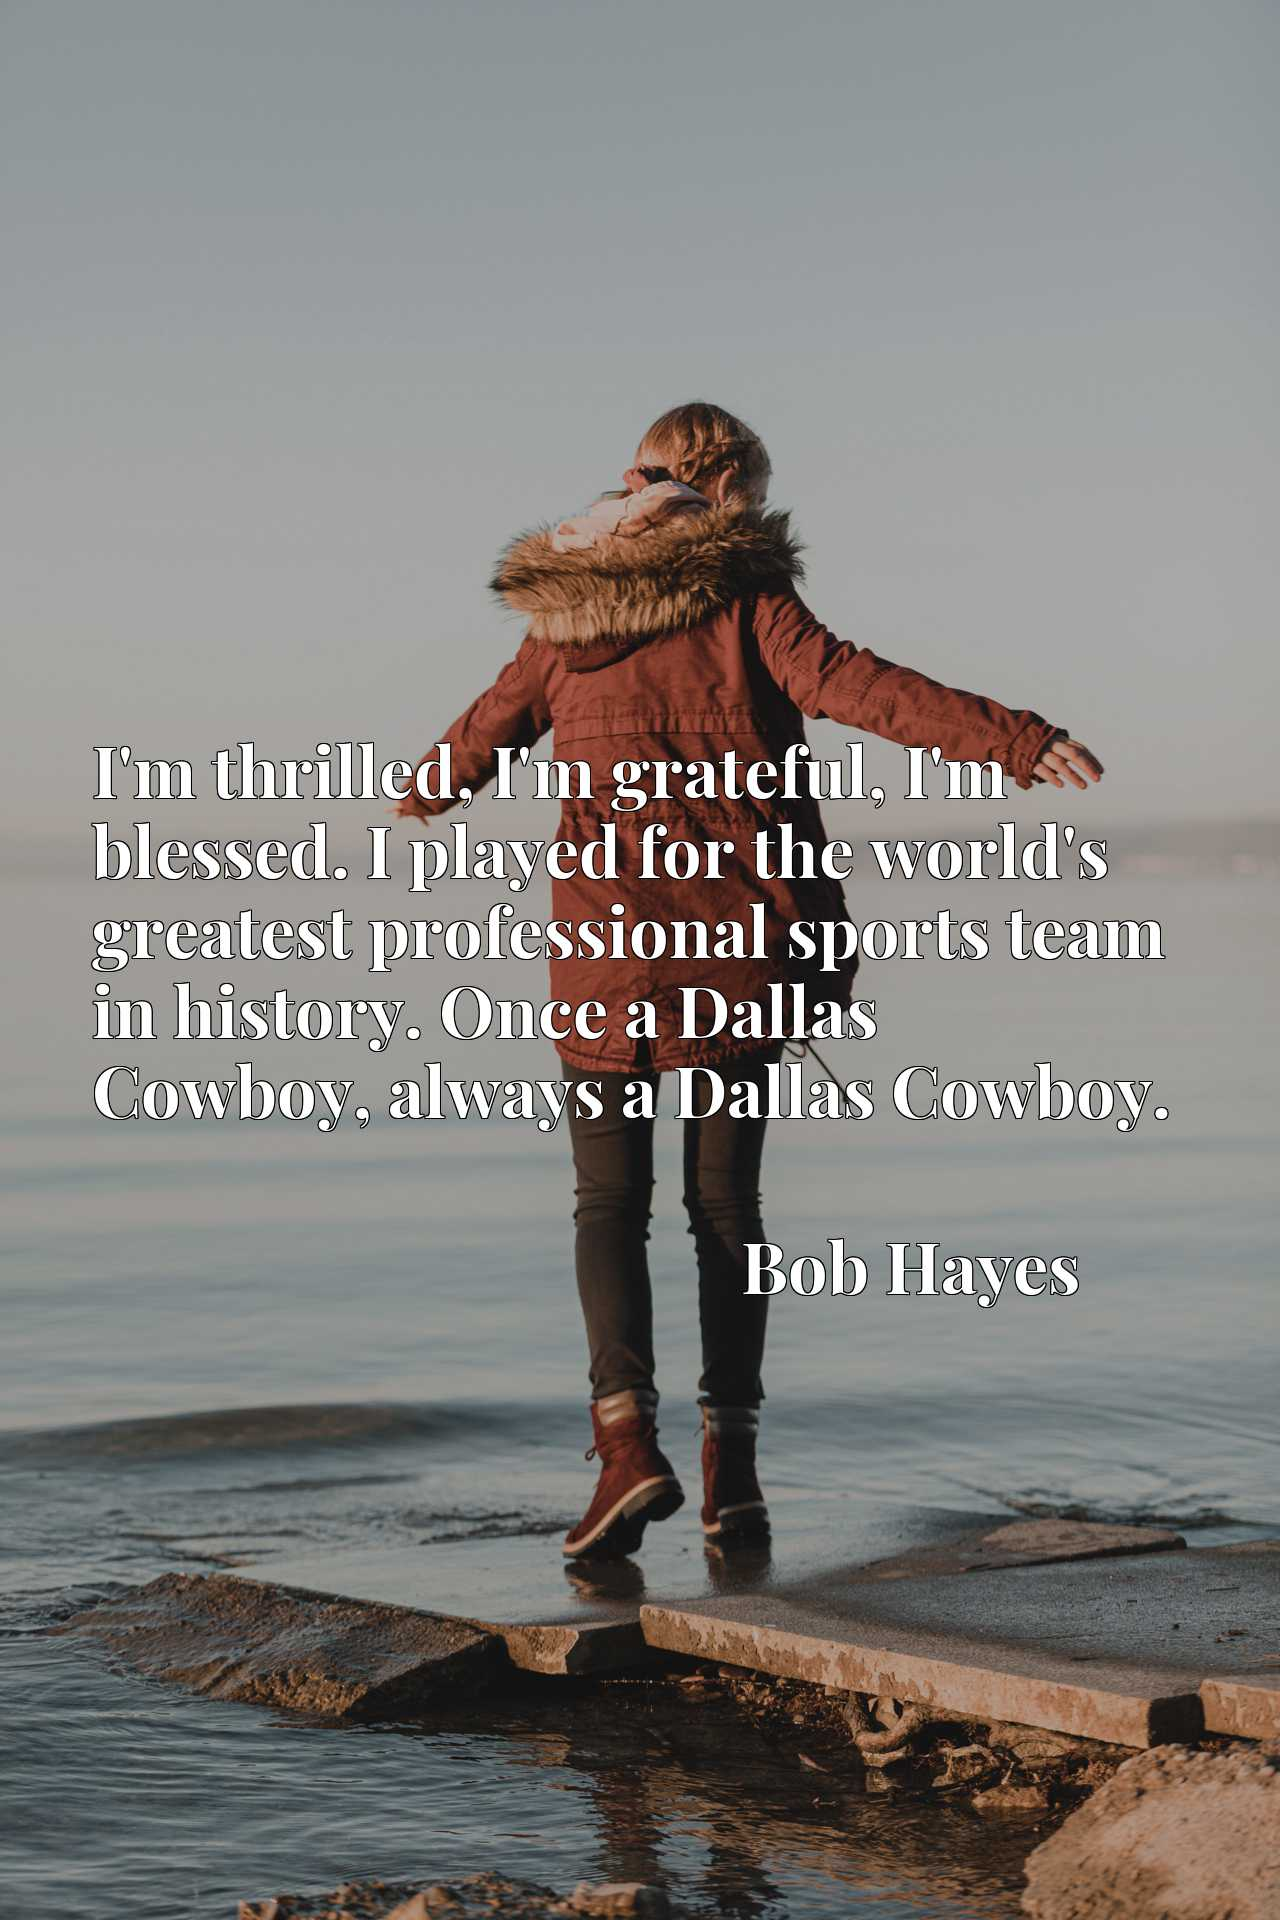 Quote Picture :I'm thrilled, I'm grateful, I'm blessed. I played for the world's greatest professional sports team in history. Once a Dallas Cowboy, always a Dallas Cowboy.